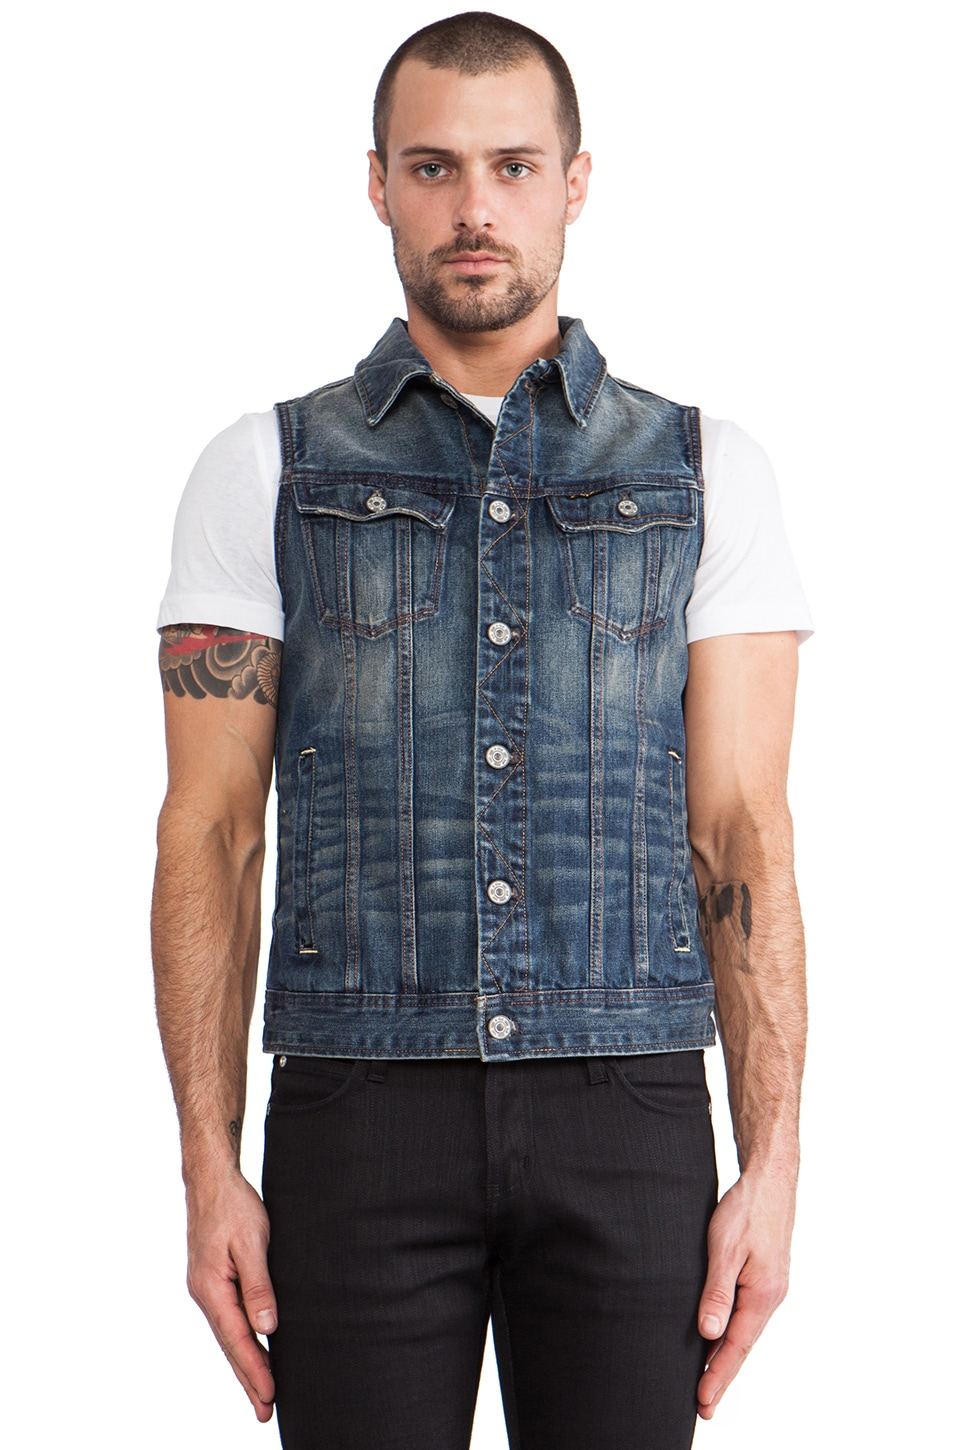 G-Star Slim Tailor Vest Dalex Denim in Medium Aged